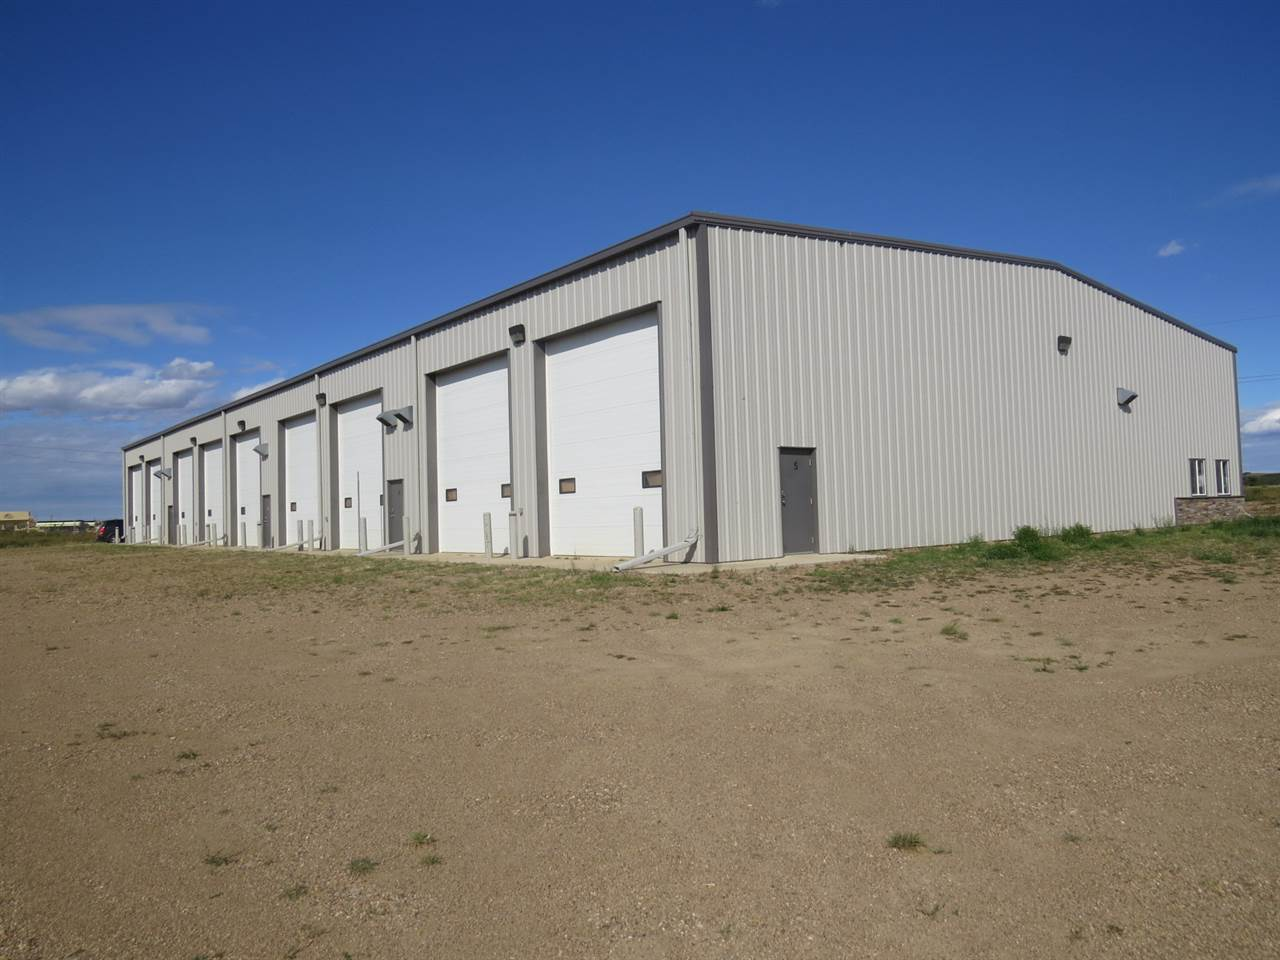 Modern Industrial Building at Hardisty on 5.10 acres! Perfect space for construction, manufacturing, and industrial operations at Hardisty built in 2014. Building has a total of 15,000sqft, 4 Double/Door Bays and 1 Single/Door Bay with separate washrooms in each. Single bay is complete with 2 bedroom Living space, Full Kitchen, Living Room and laundry service. All efficient underfloor heating design, electric doors, Sloped bay with drains and gravelled parking area on 5.10 acres. An outstanding building ready for office/storage bays, manufacturing, and business at Canada's largest oil storage facility!